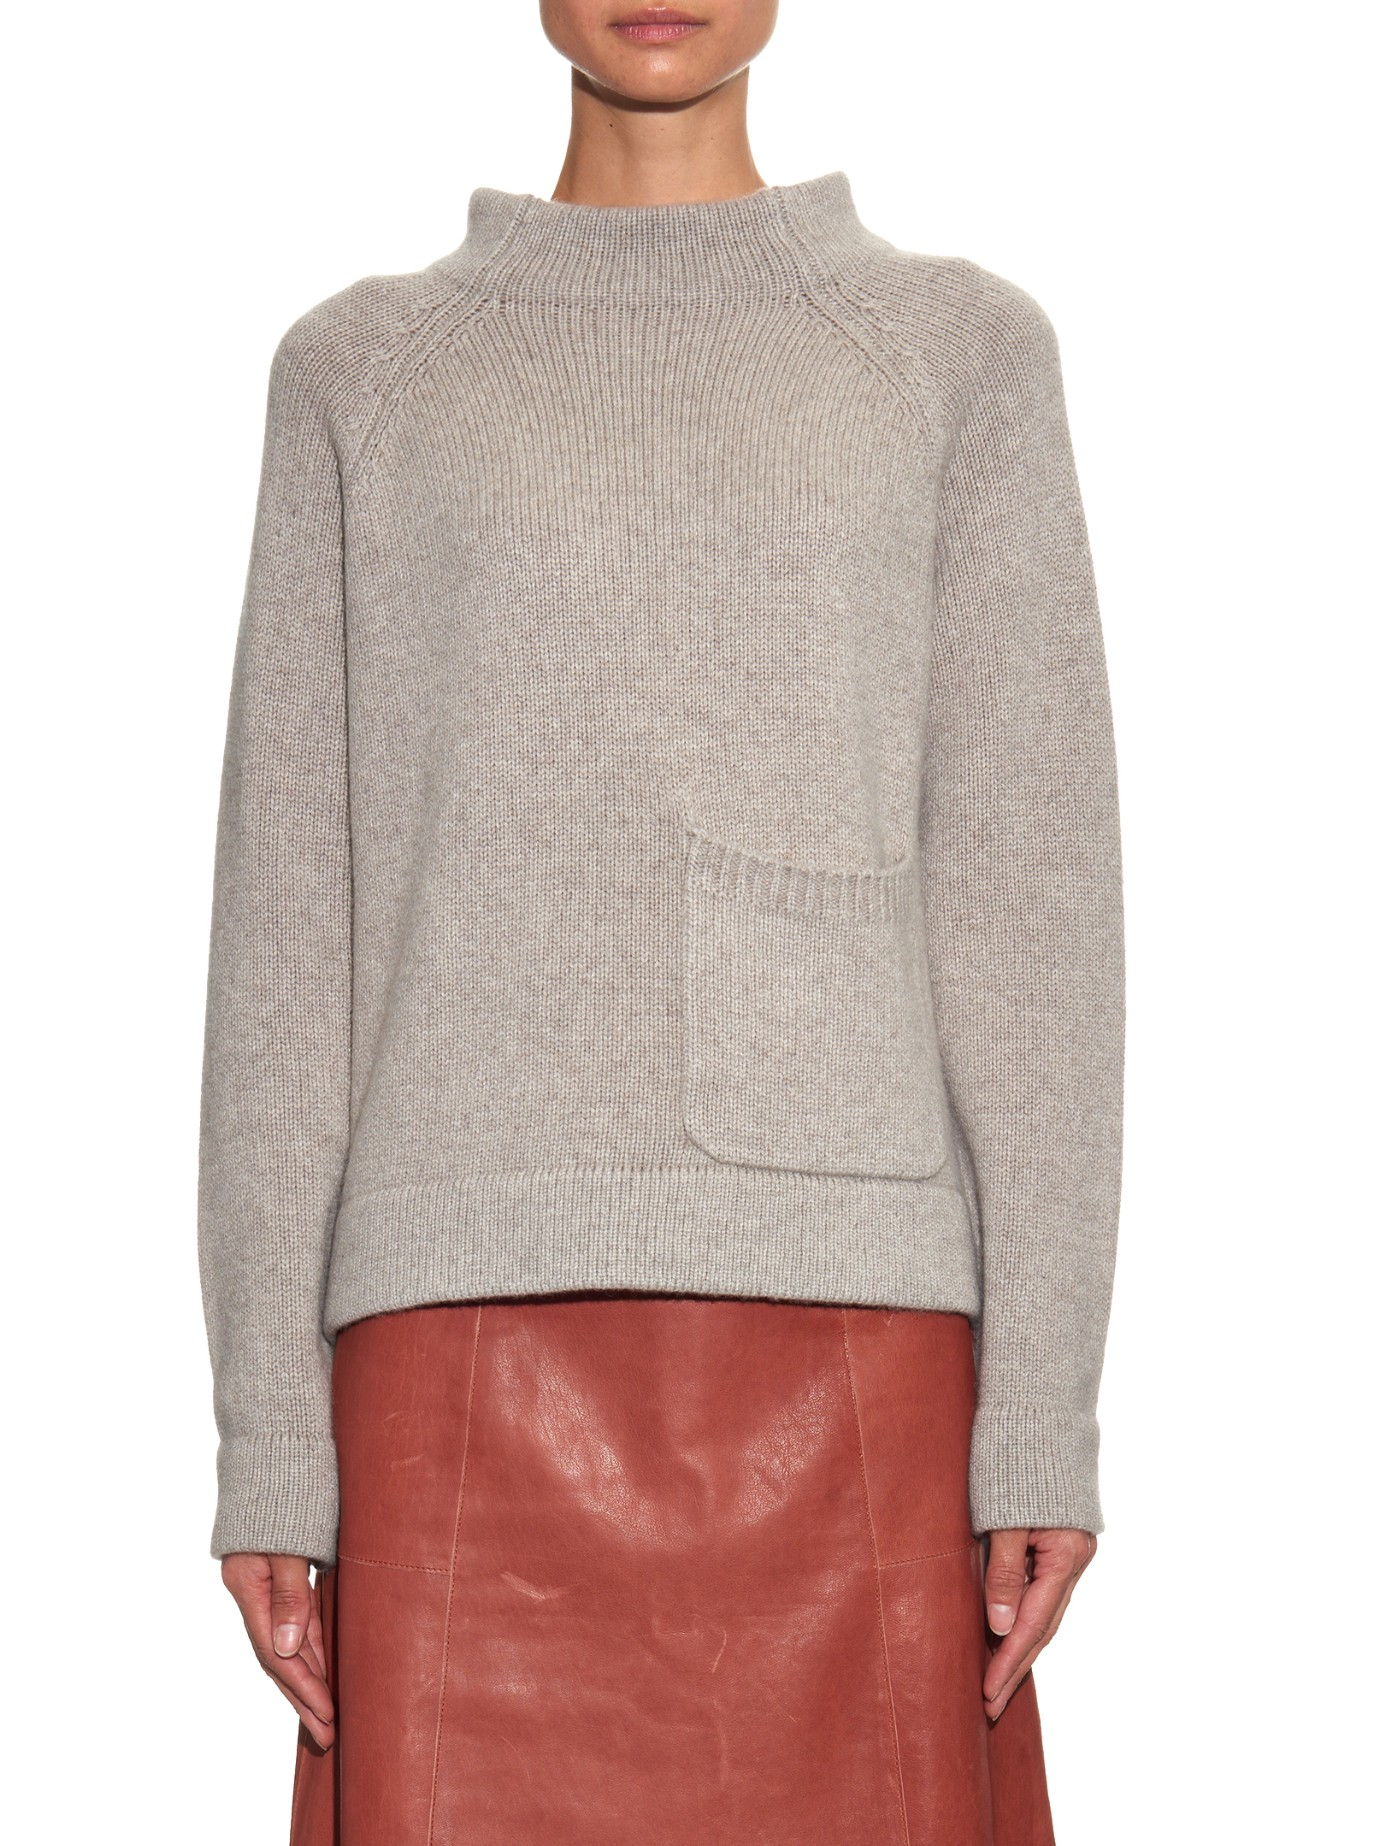 Joseph Patch-pocket Cashmere Sweater in Natural | Lyst